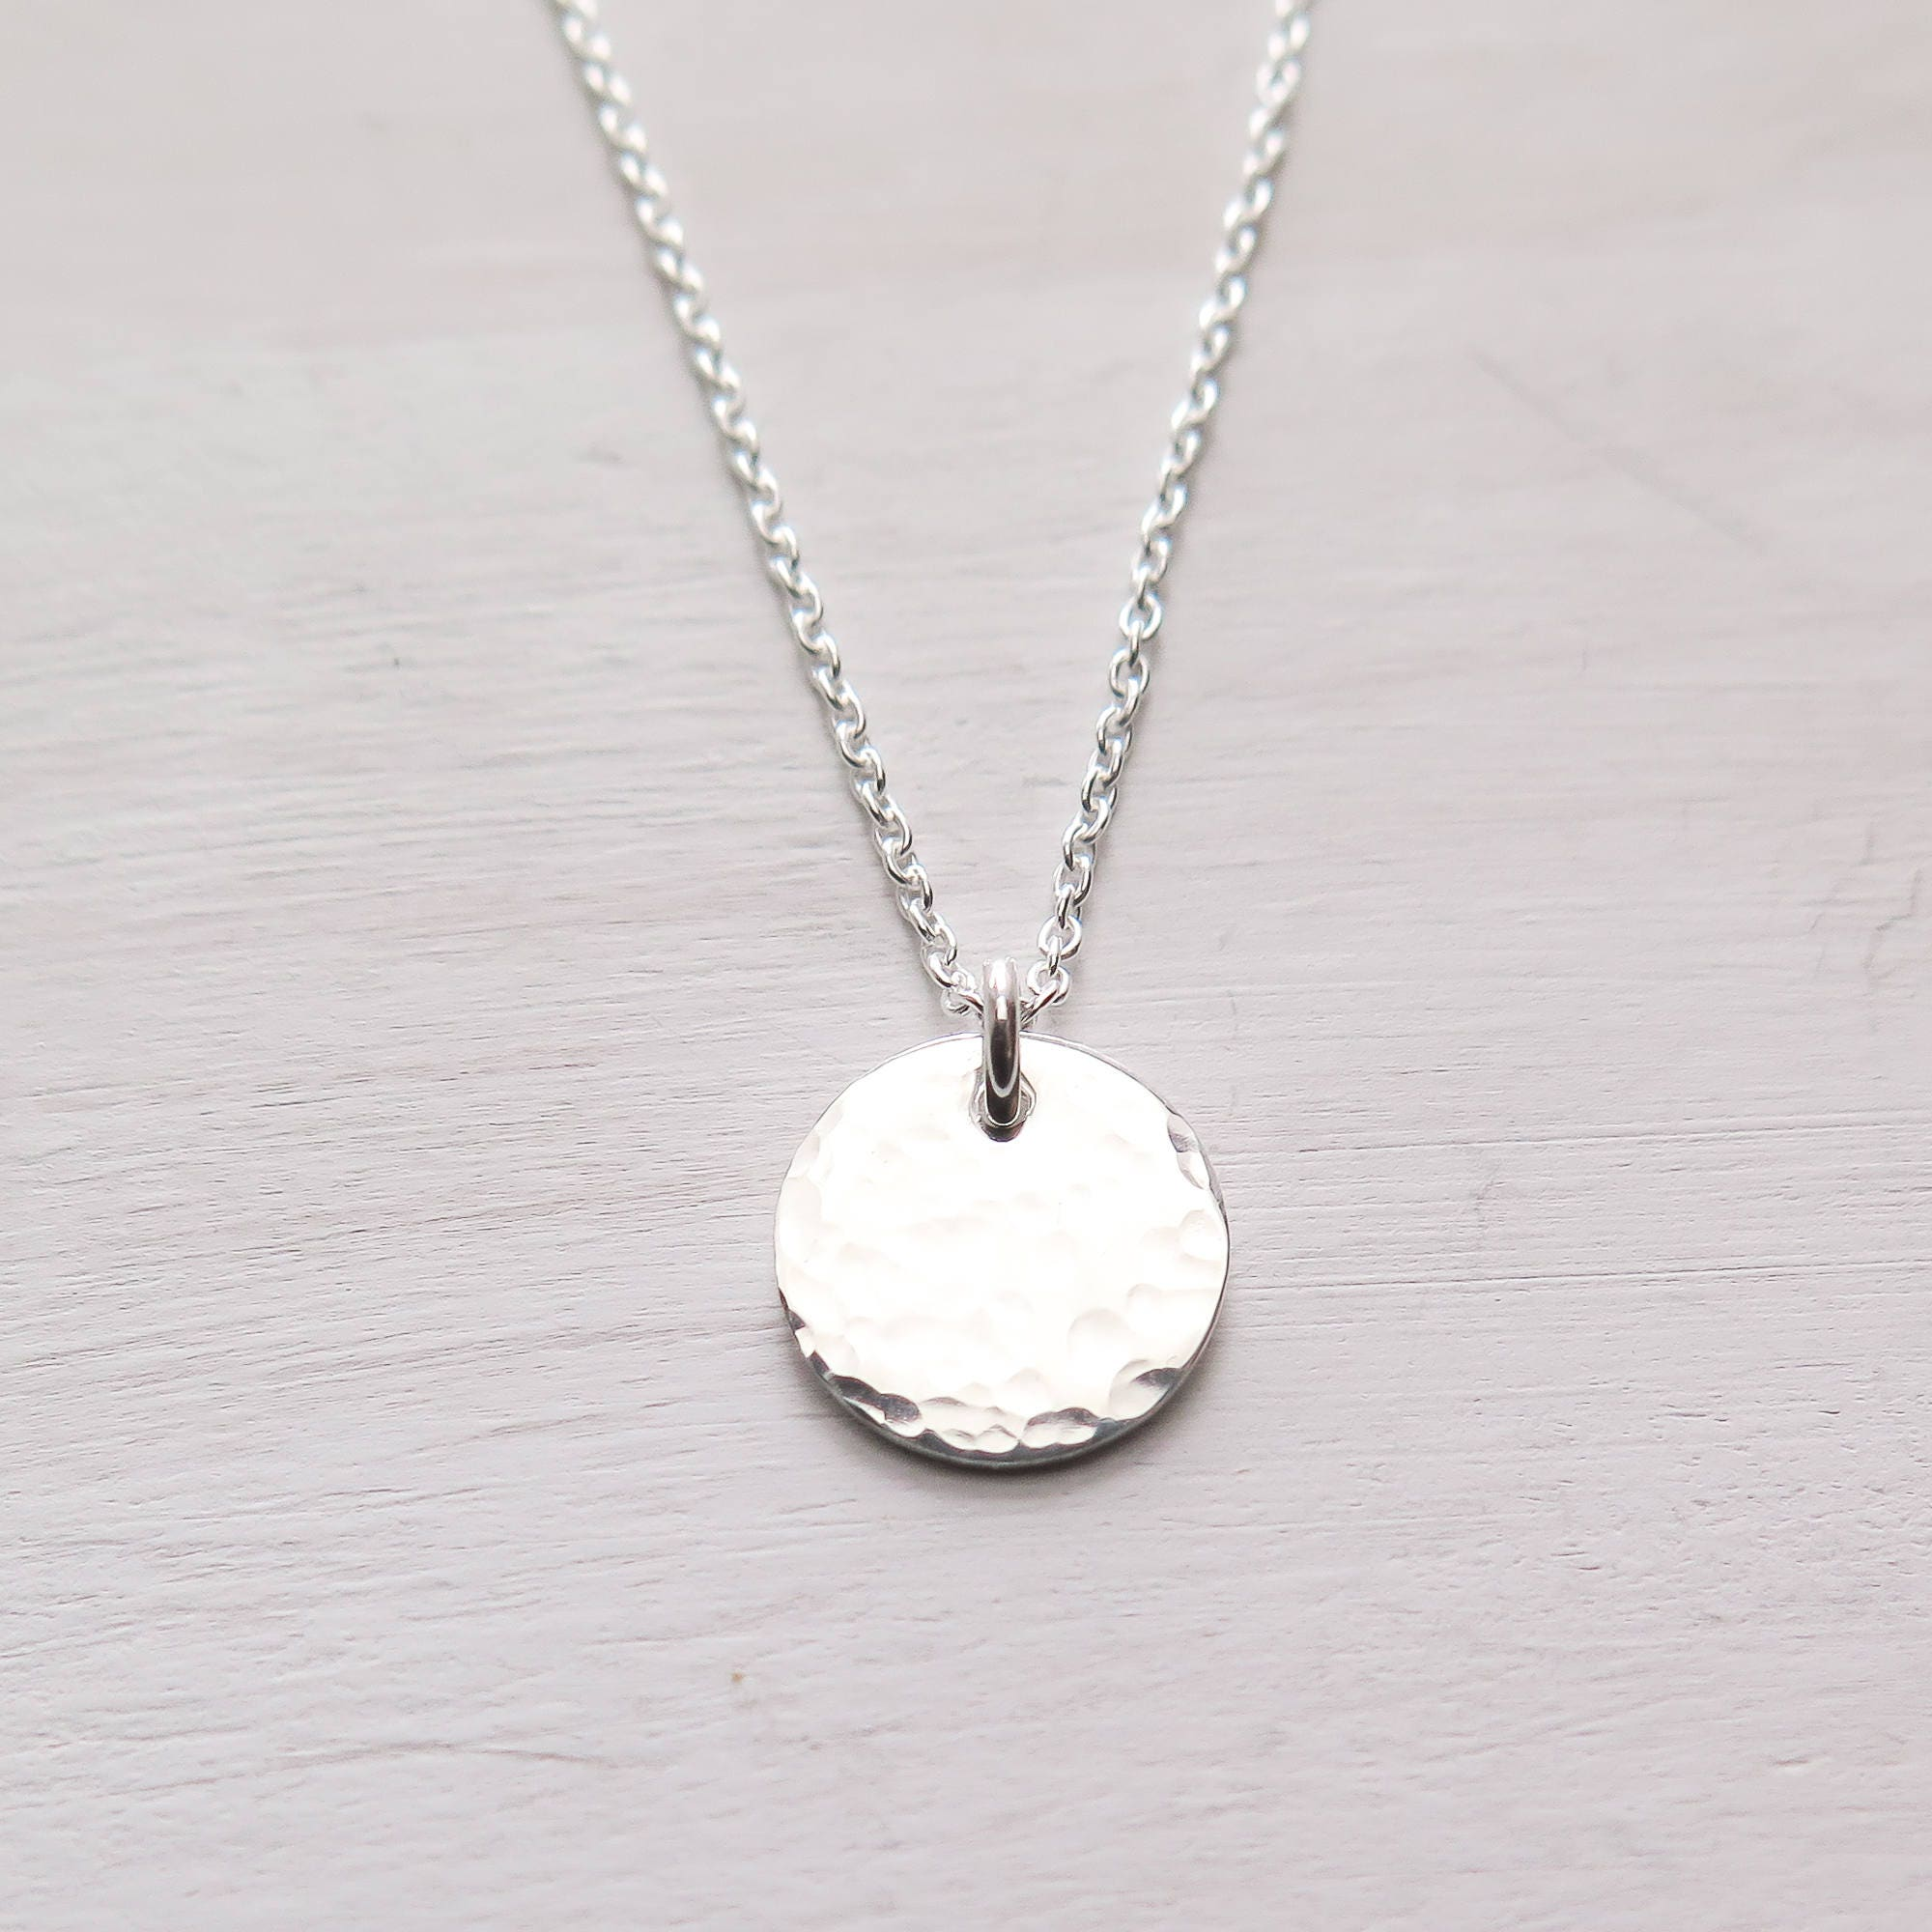 6b4692d7ca74ea Hammered Disc Necklace, Tiny Disc, Minimalist Necklace, Dainty, Layering  Jewelry, Gift for Her, Gift for Friend, Sterling Silver